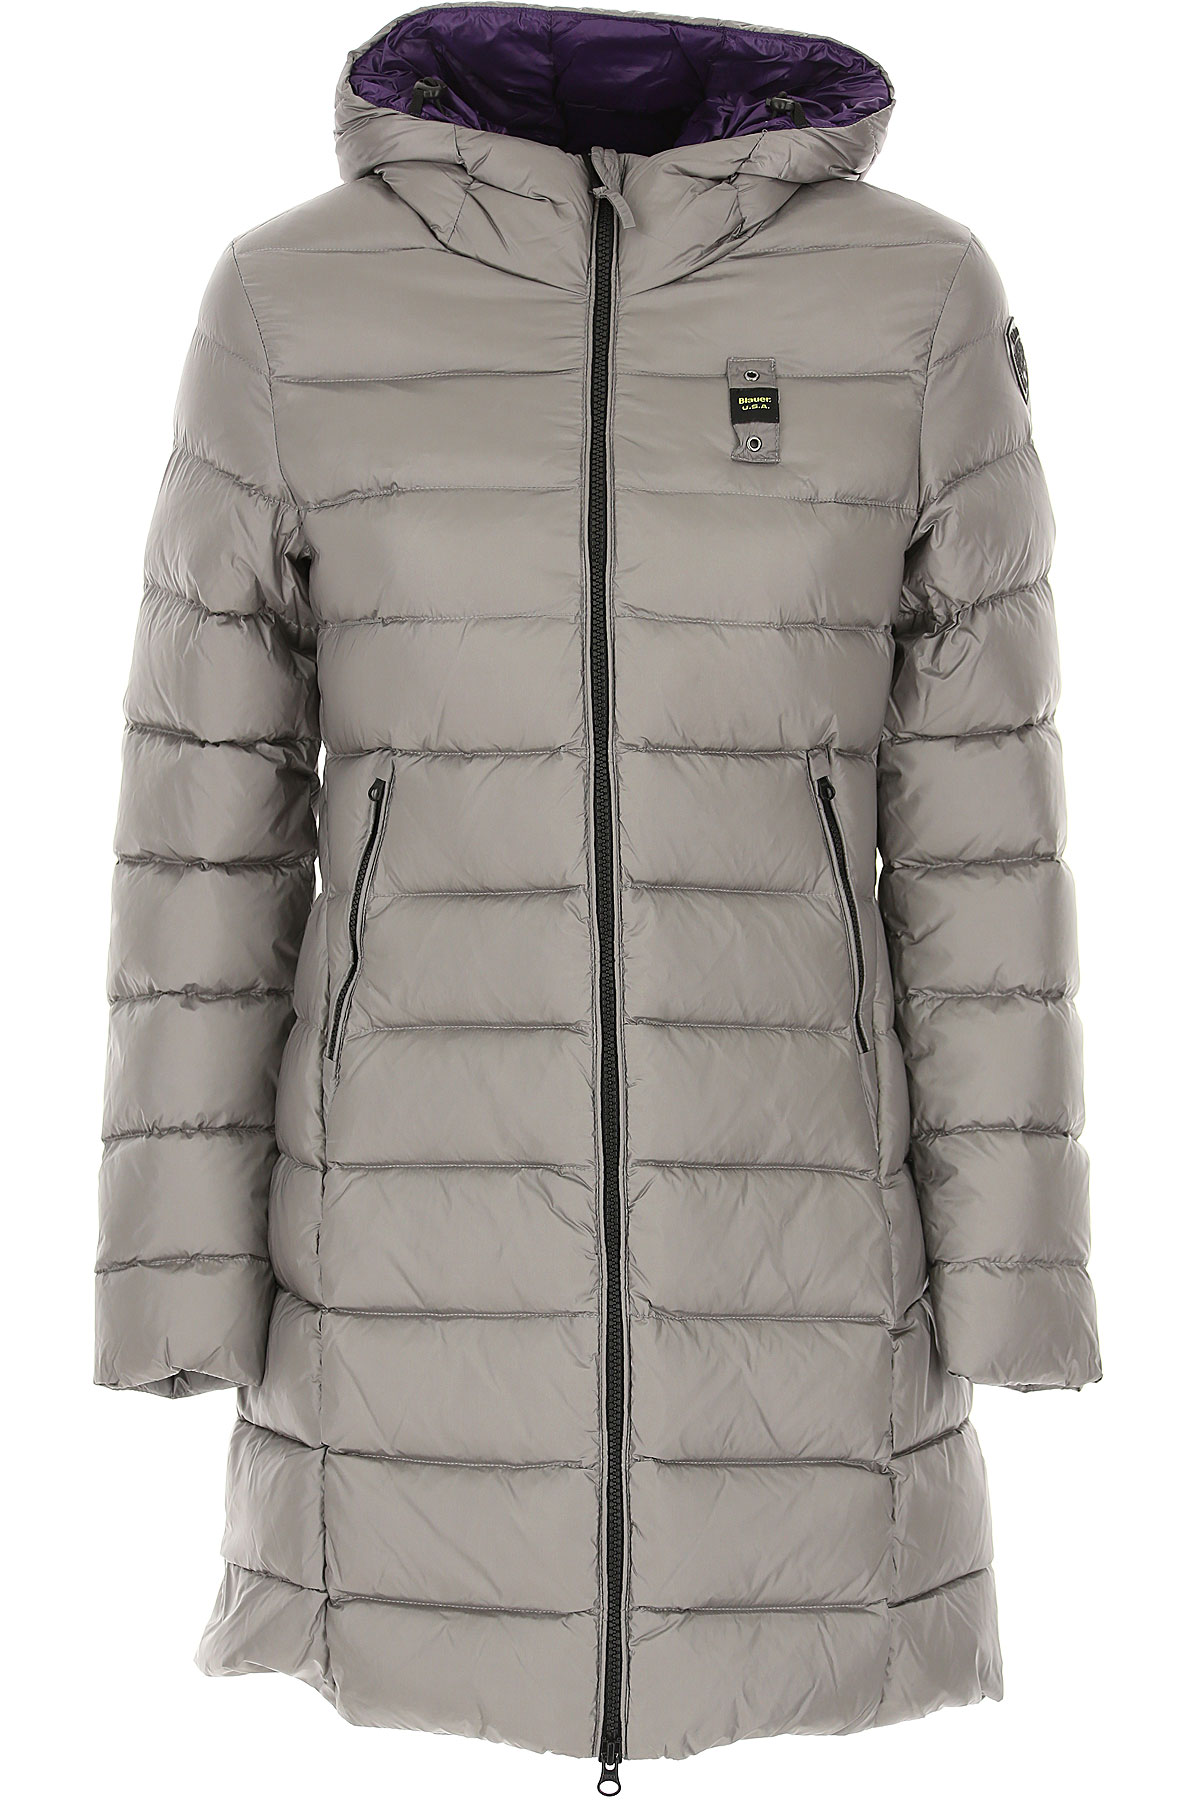 Blauer Down Jacket for Women, Puffer Ski Jacket On Sale, Light Grey, polyester, 2019, 2 4 6 8